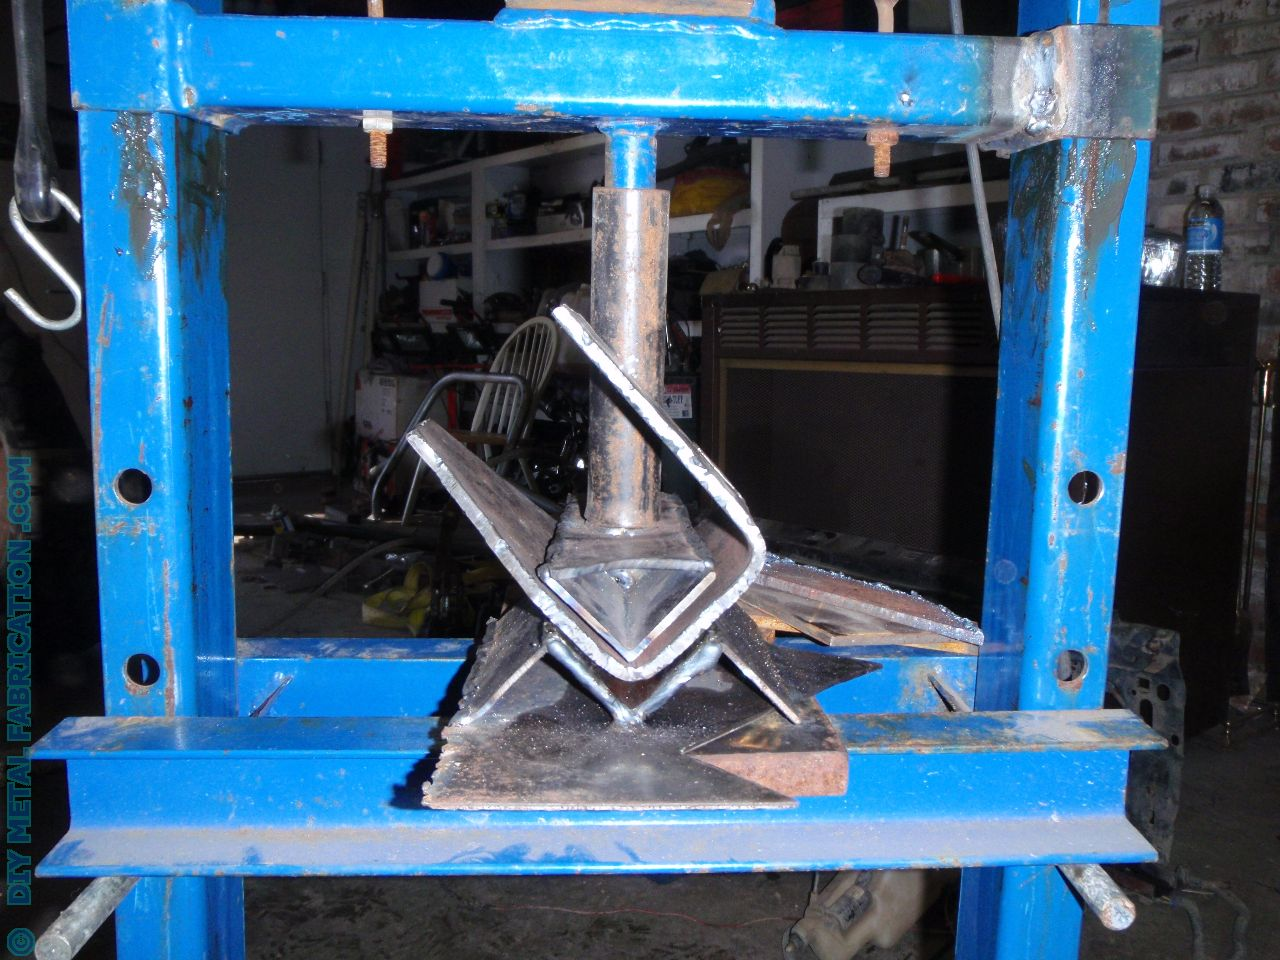 Metal Objects With Press Brake Made : Diy home made press brake metal fabrication